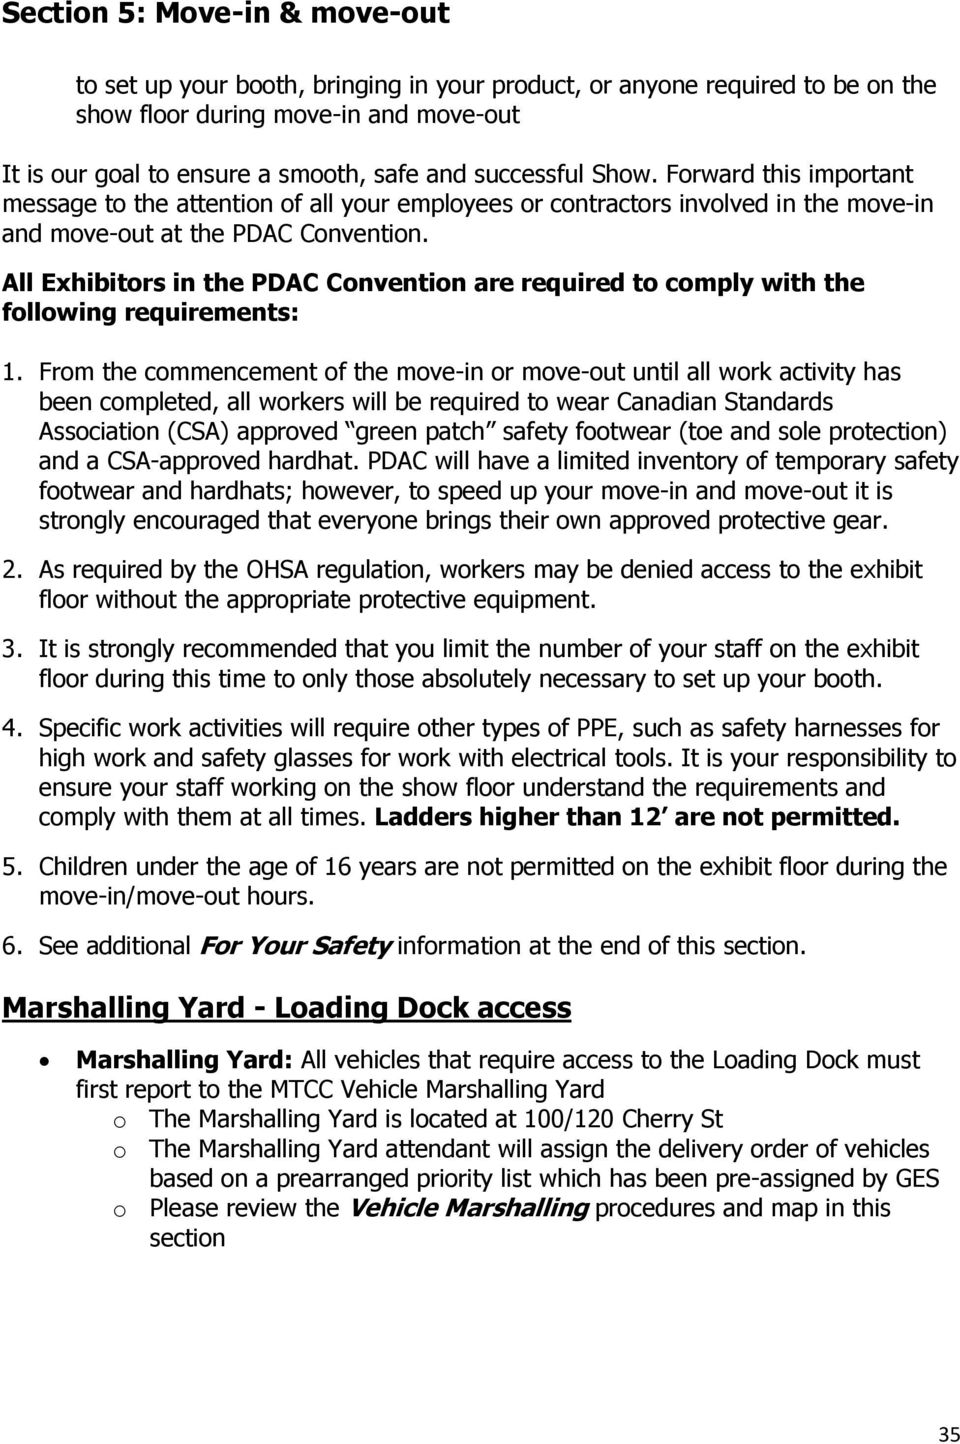 All Exhibitors in the PDAC Convention are required to comply with the following requirements: 1.